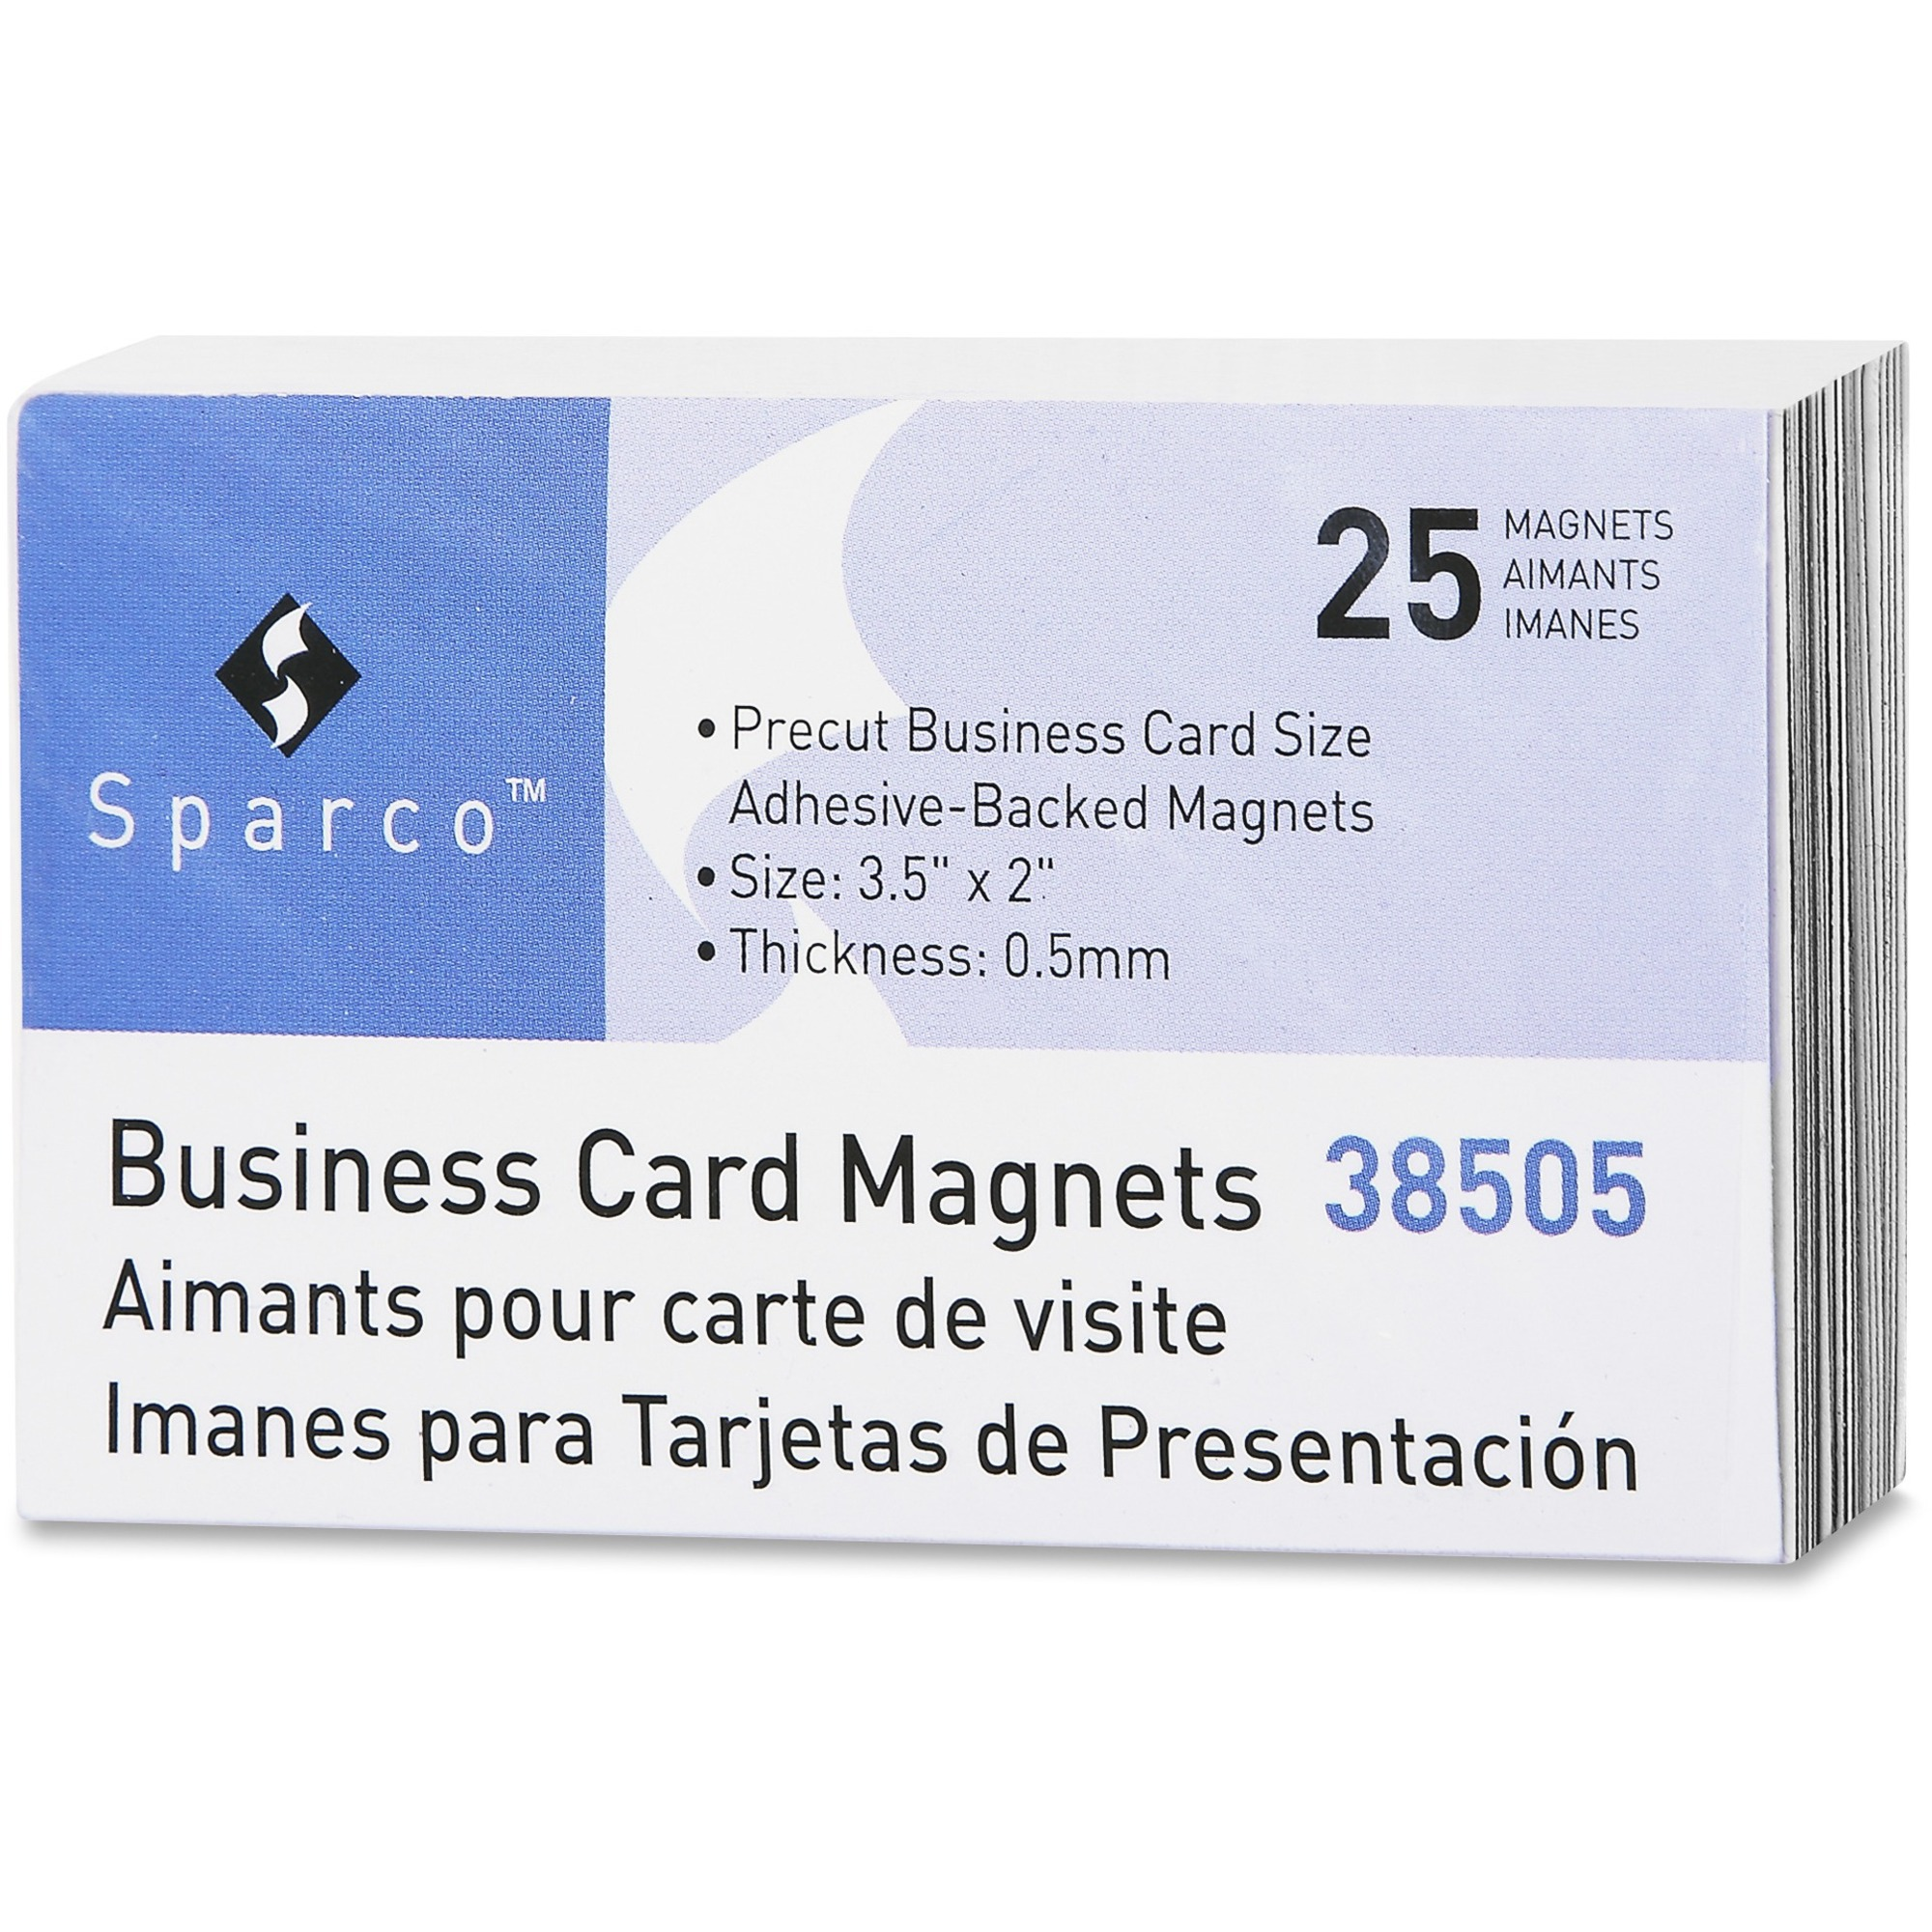 Sparco 38505 business card magnets rectangle adhesive 25 click to enlarge reheart Image collections